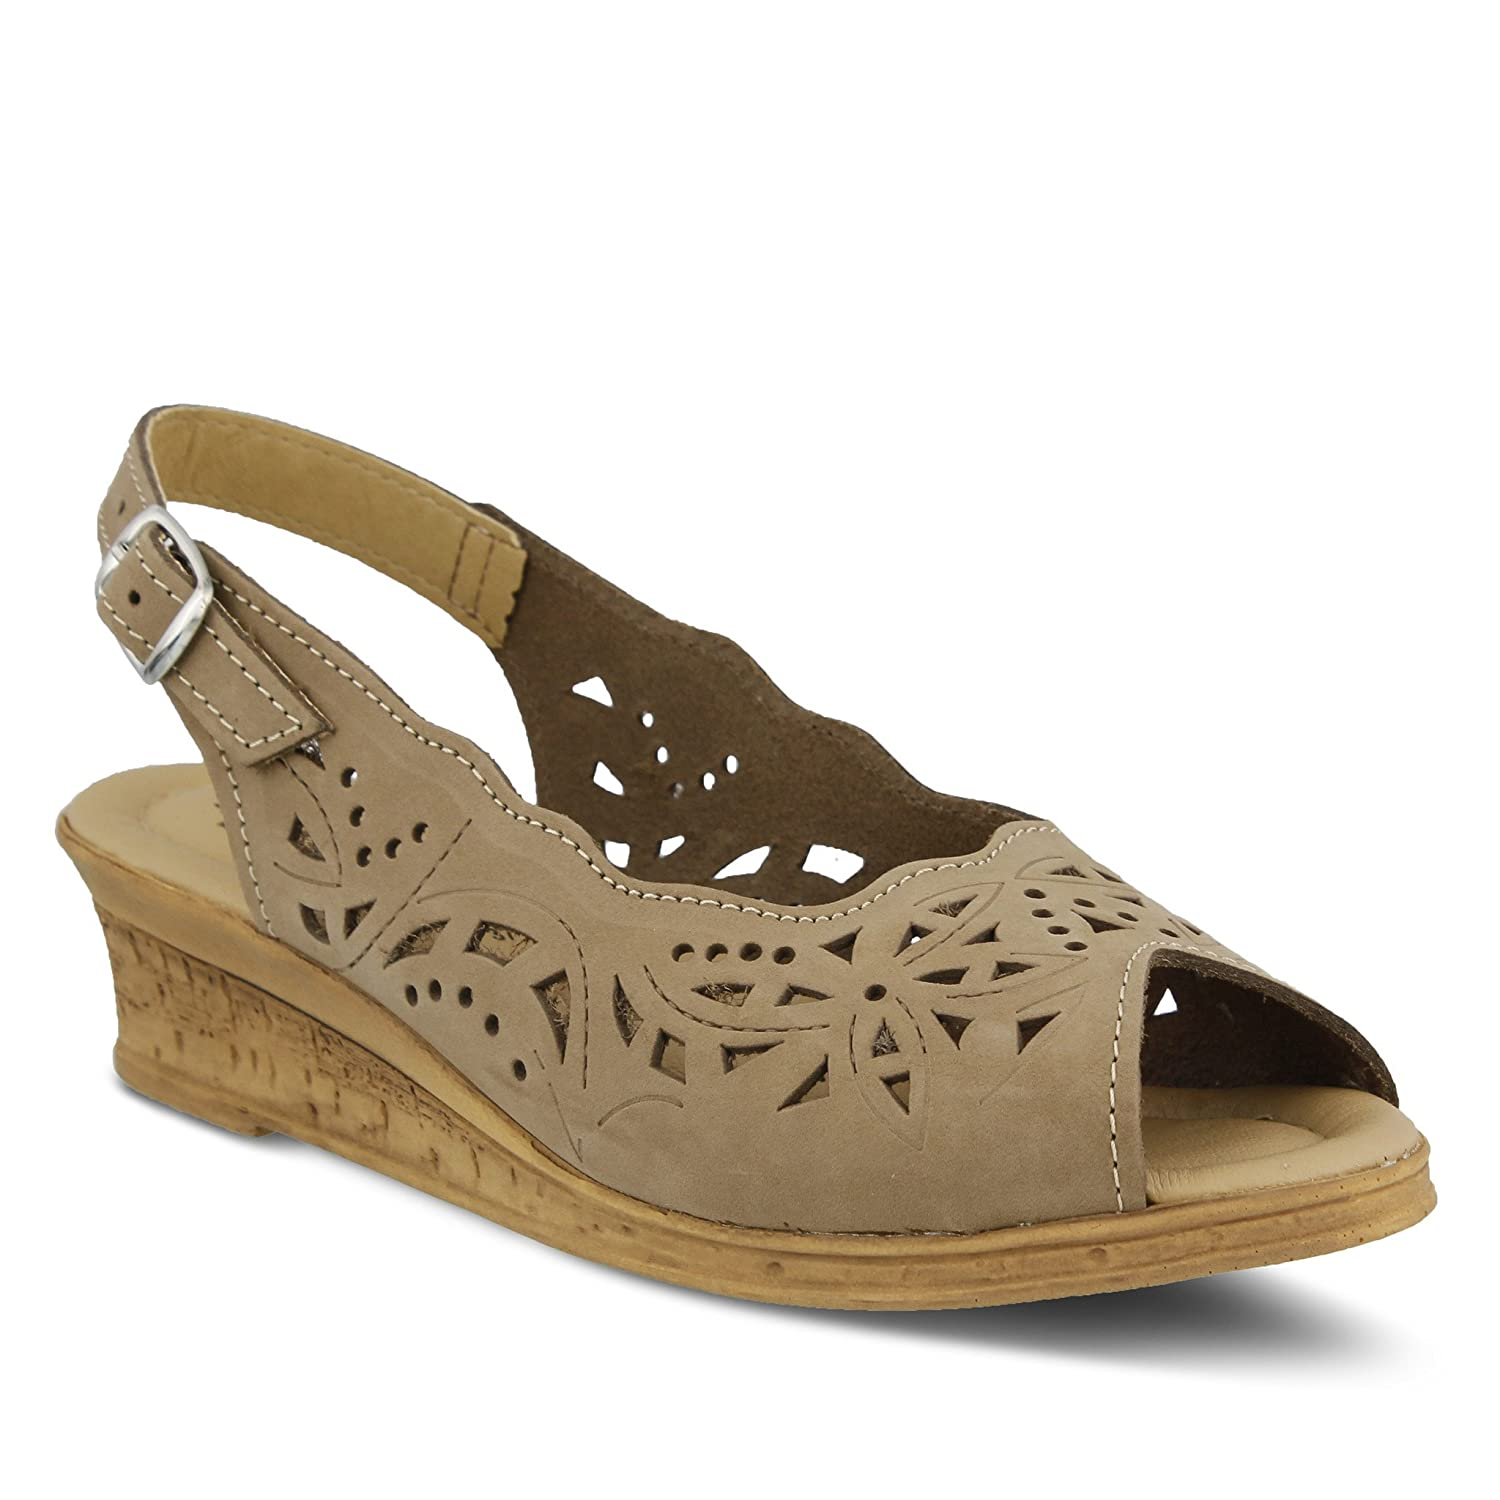 SPRING STEP Shoes Women's Orella | Color Beige | Leather Sling-Back Wedge Sandal B0789S2GBP 39 M EU